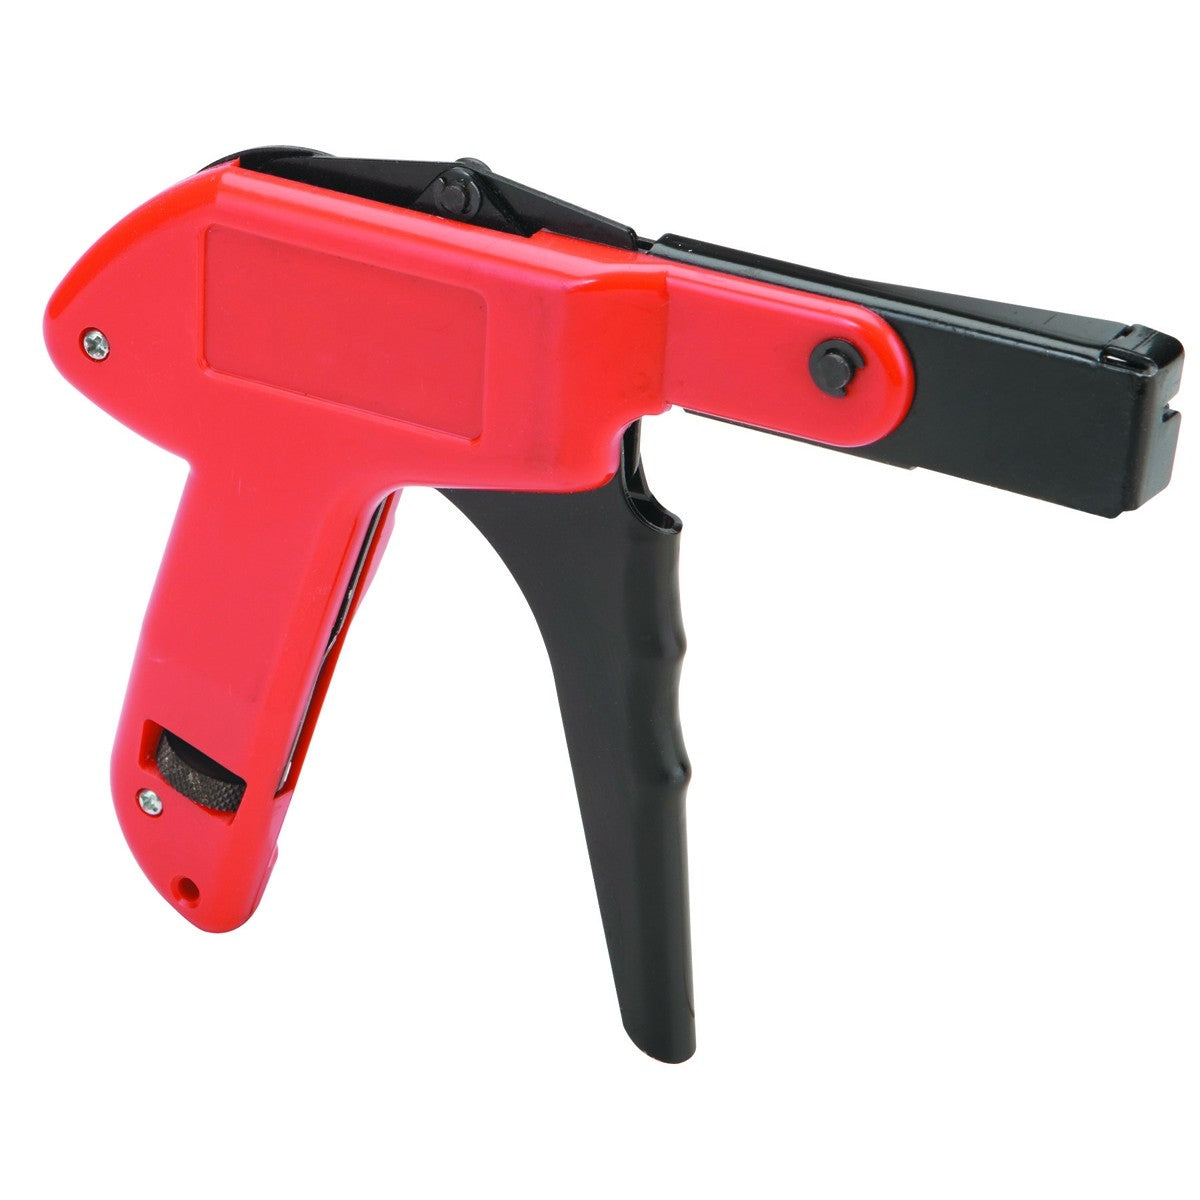 50-4511 Cable Tie Fasten Gun with Auto-Cut and safety Stop